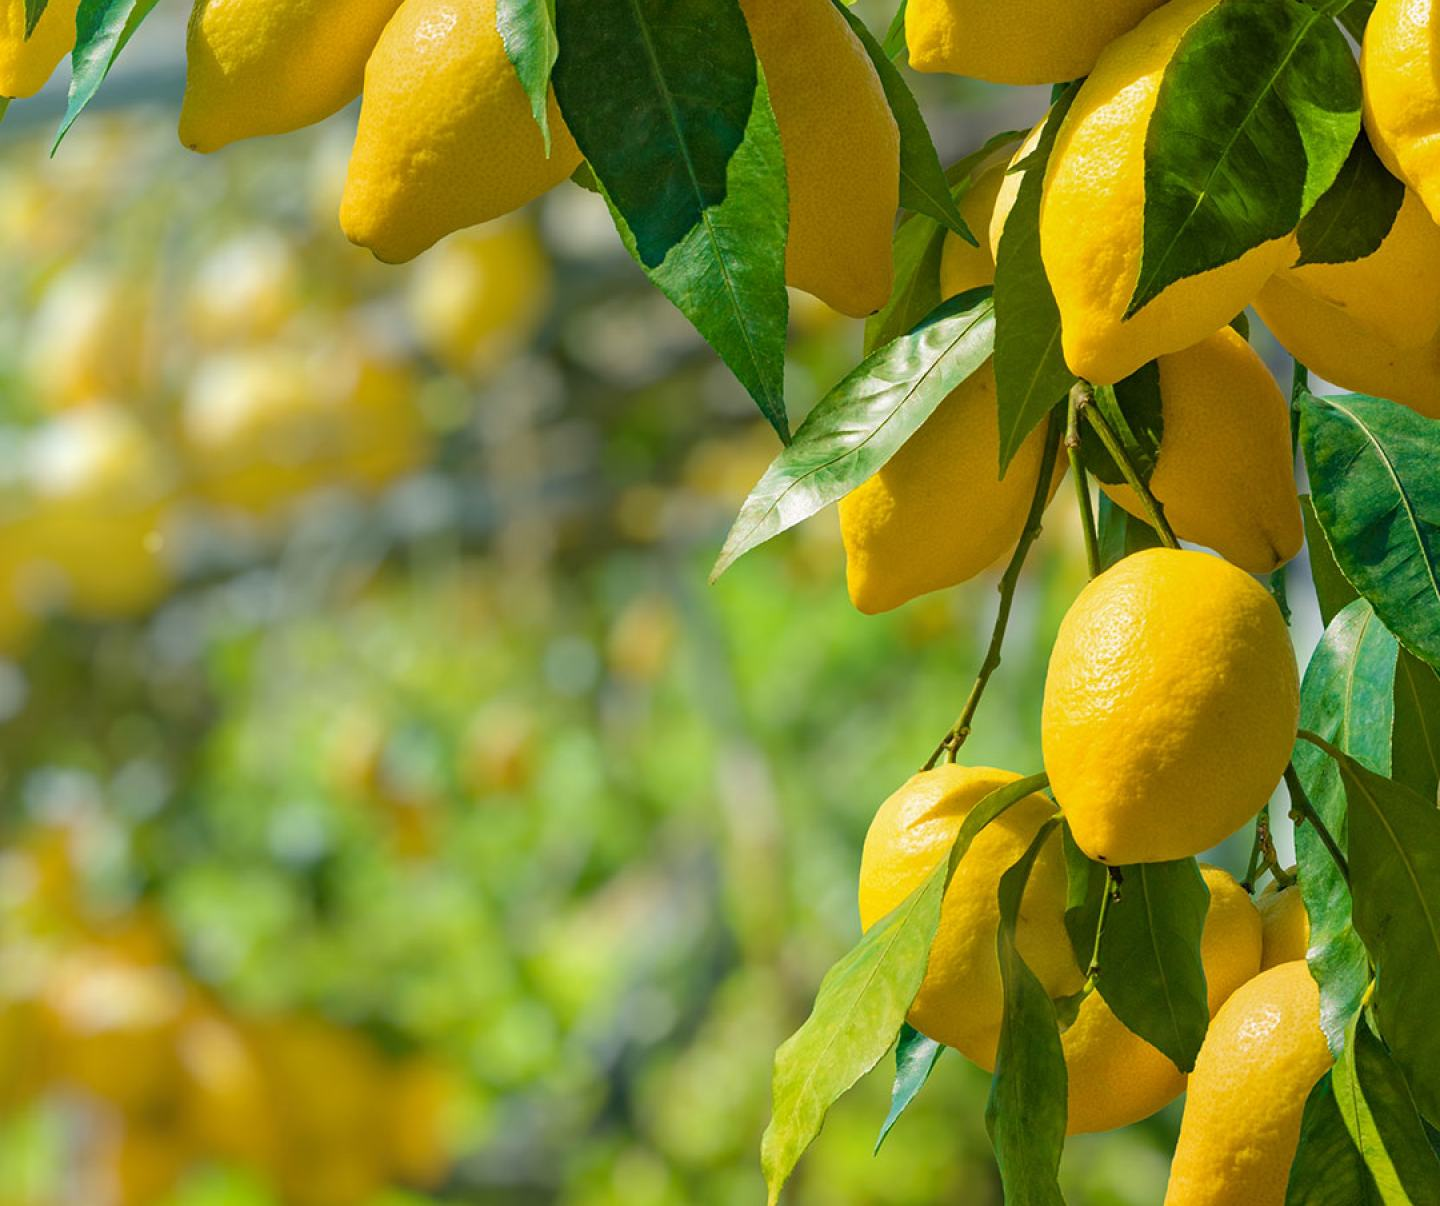 Close up of lemon citrus tree